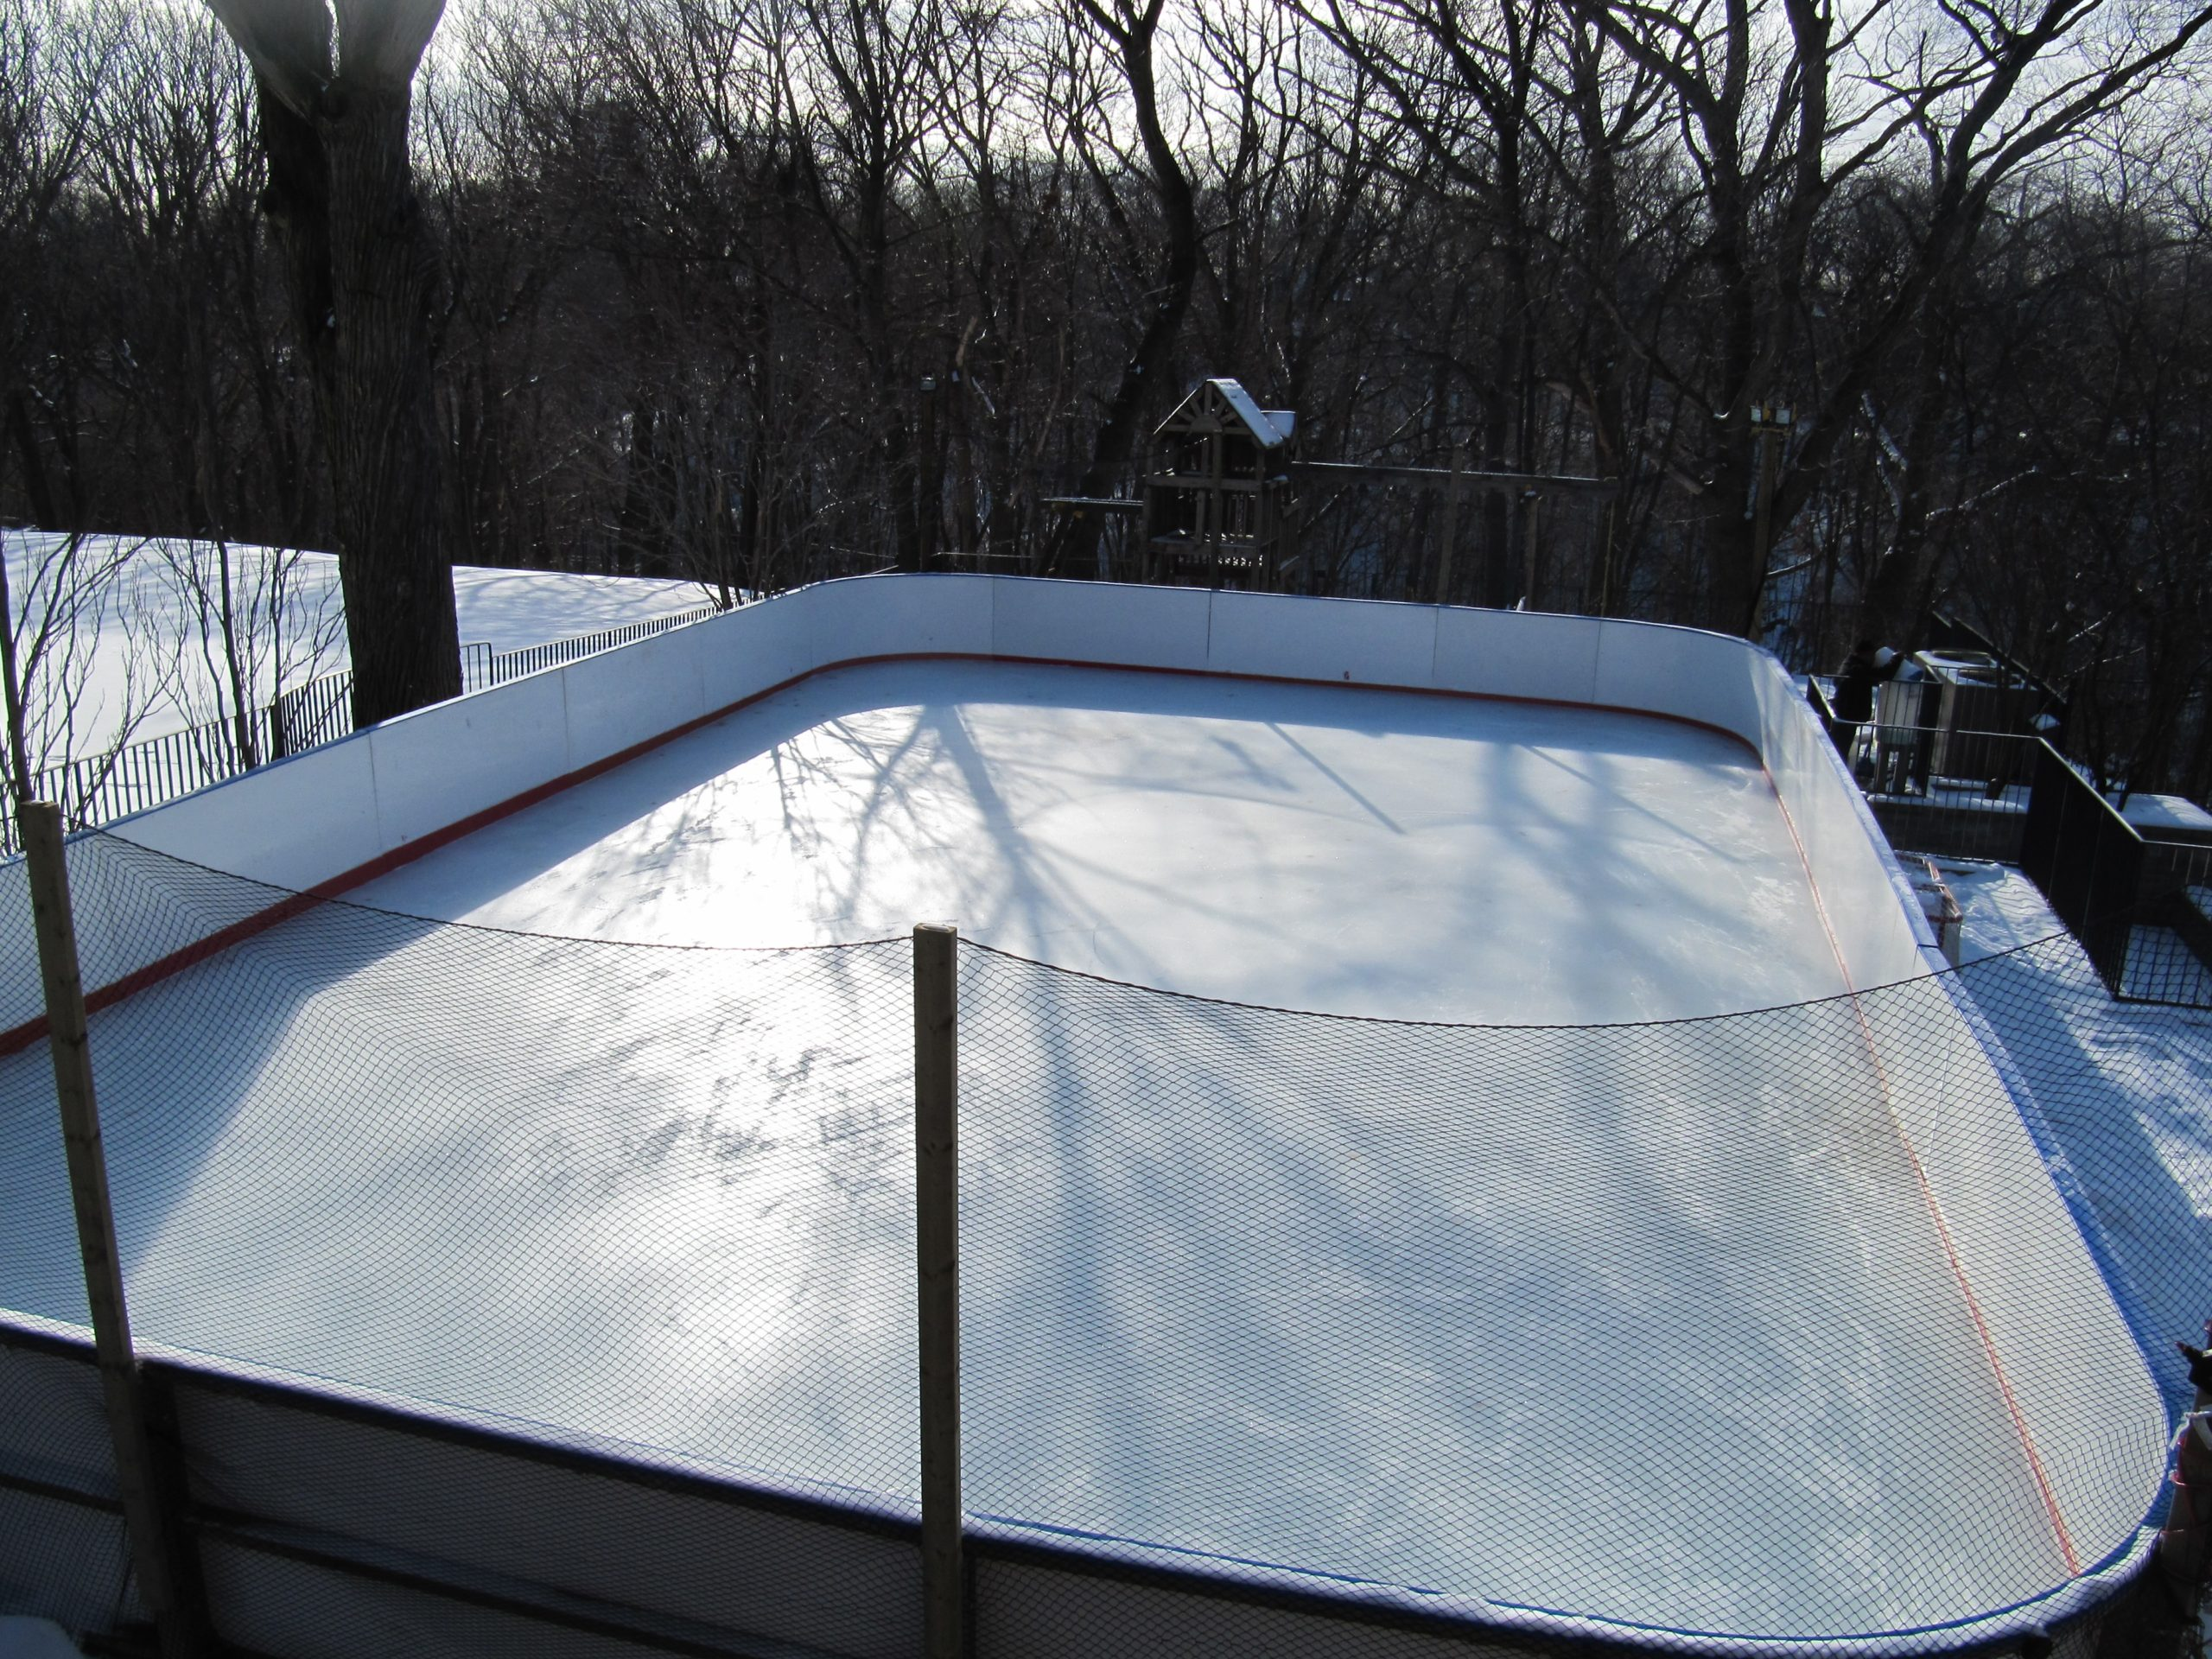 Pool to rink refrigerated rink